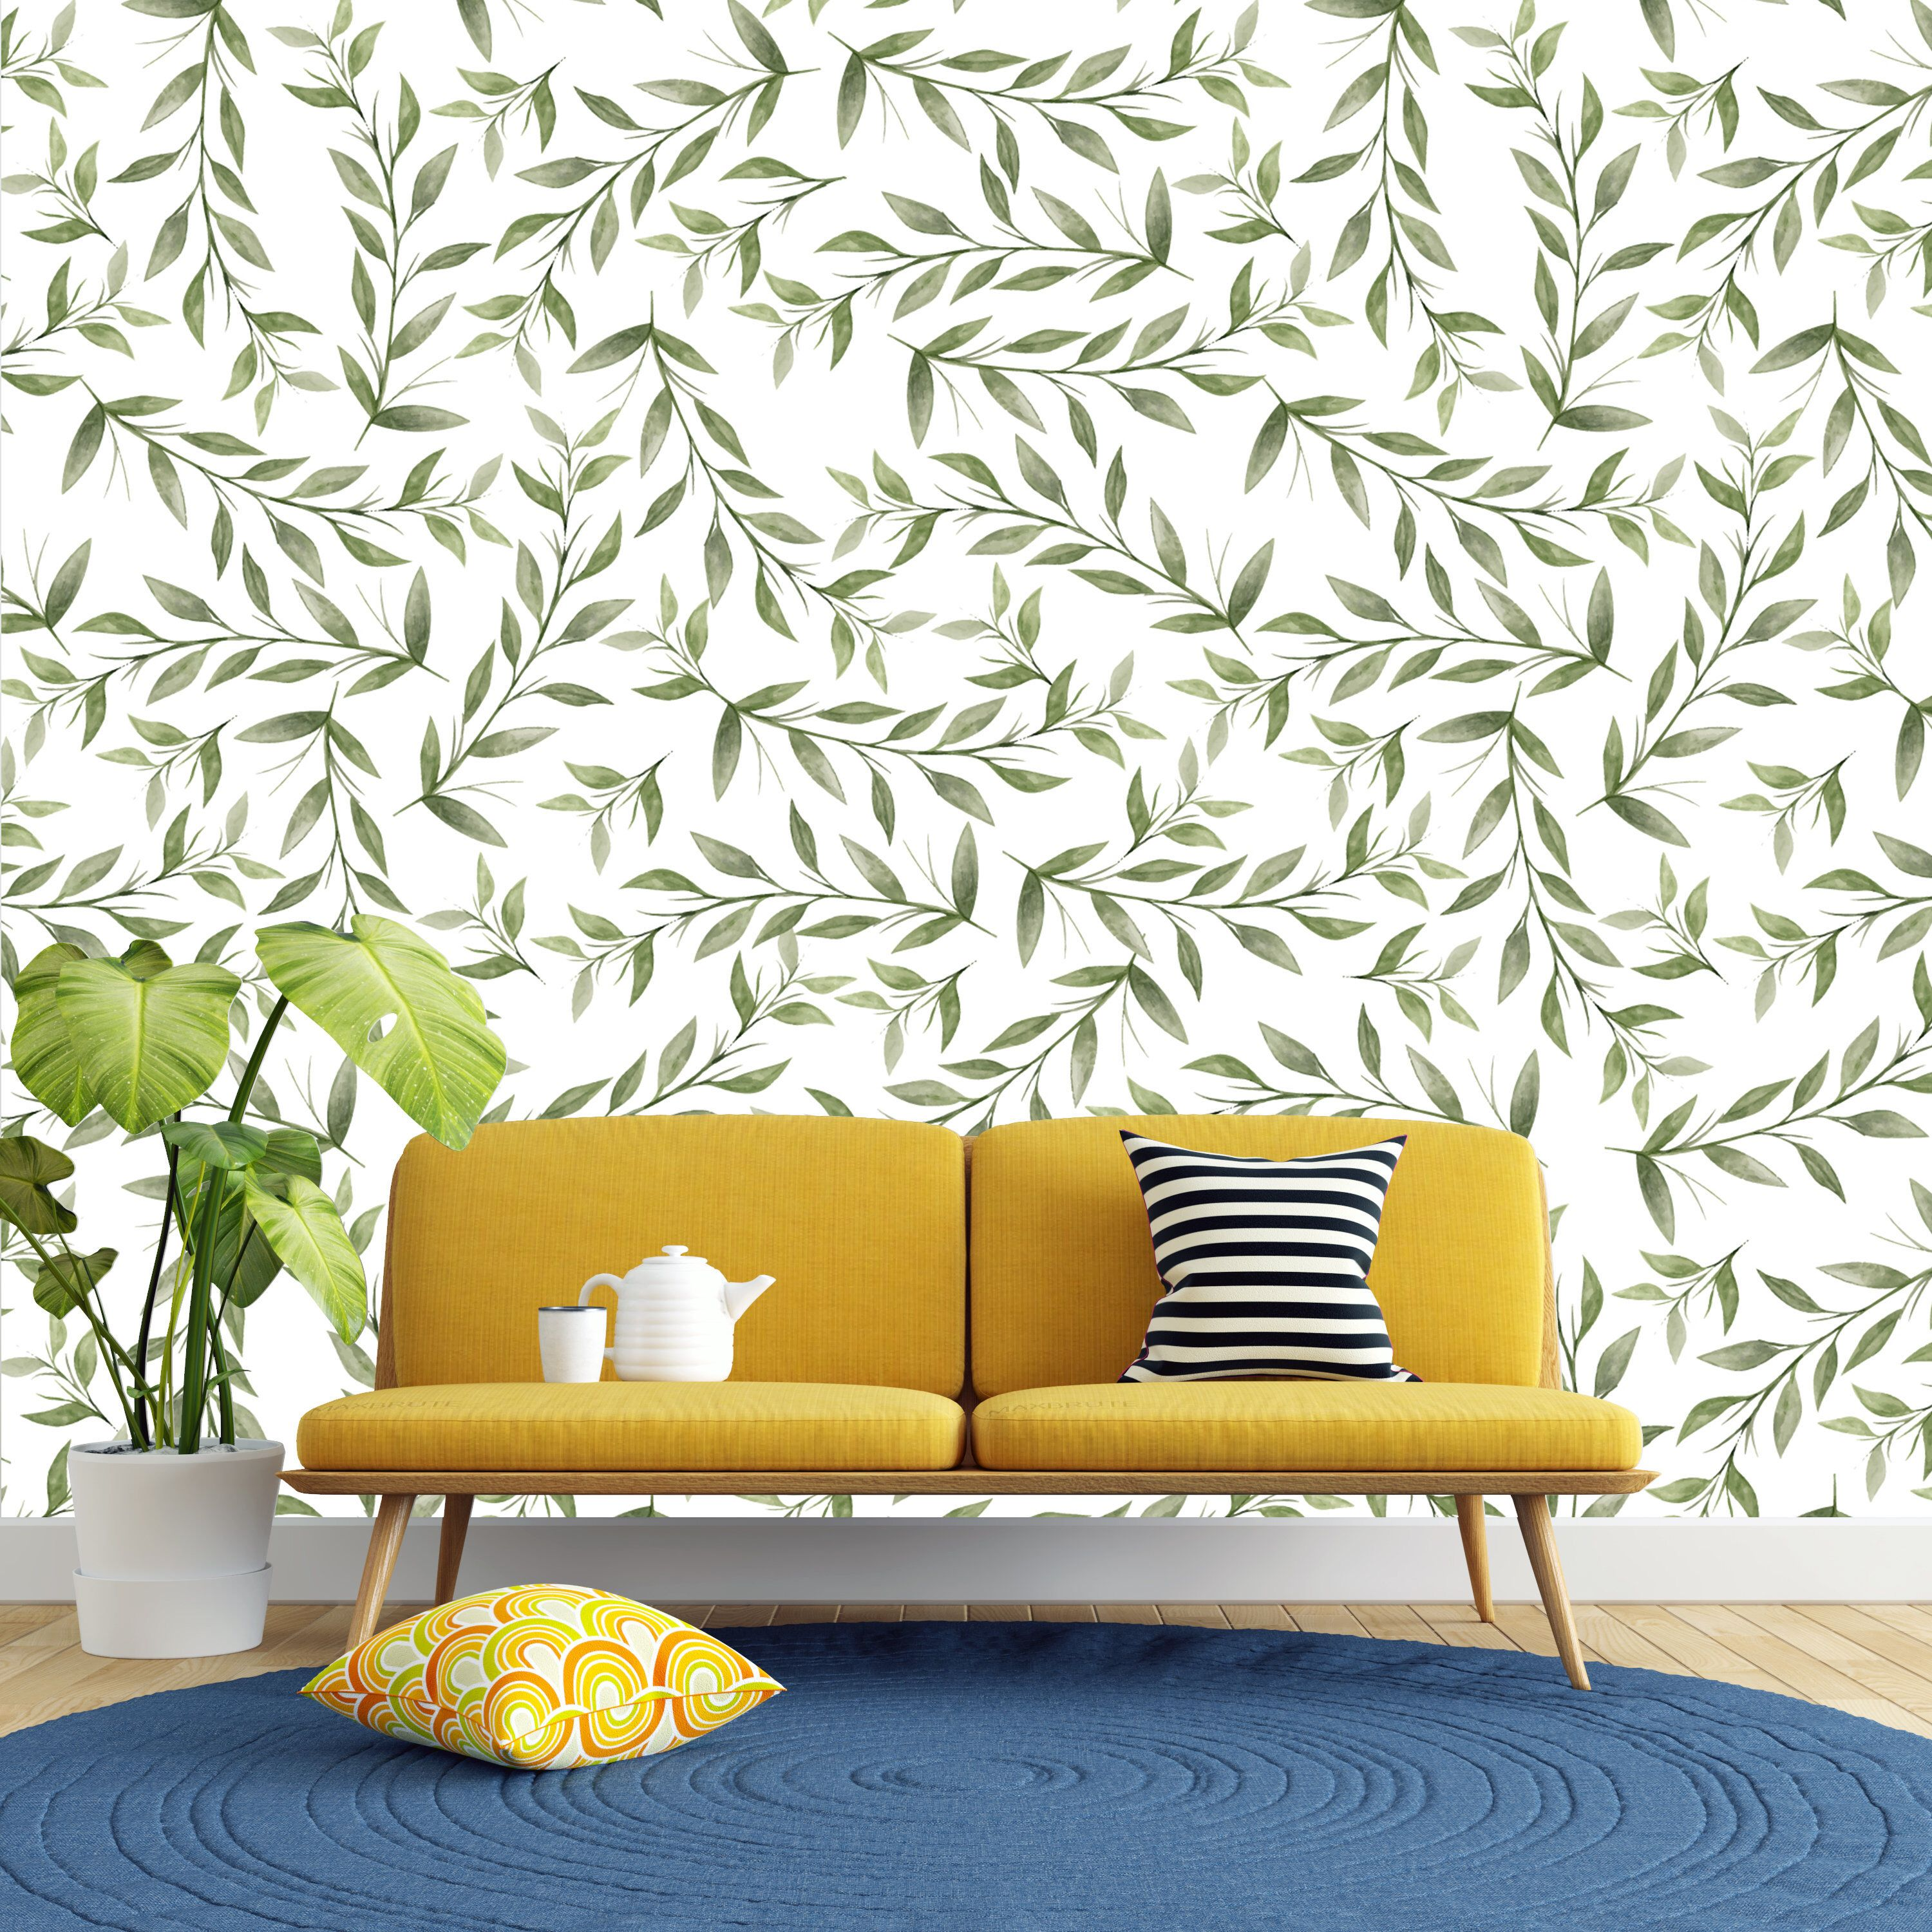 Removable Wallpaper Green Watercolor Leaves Peel and